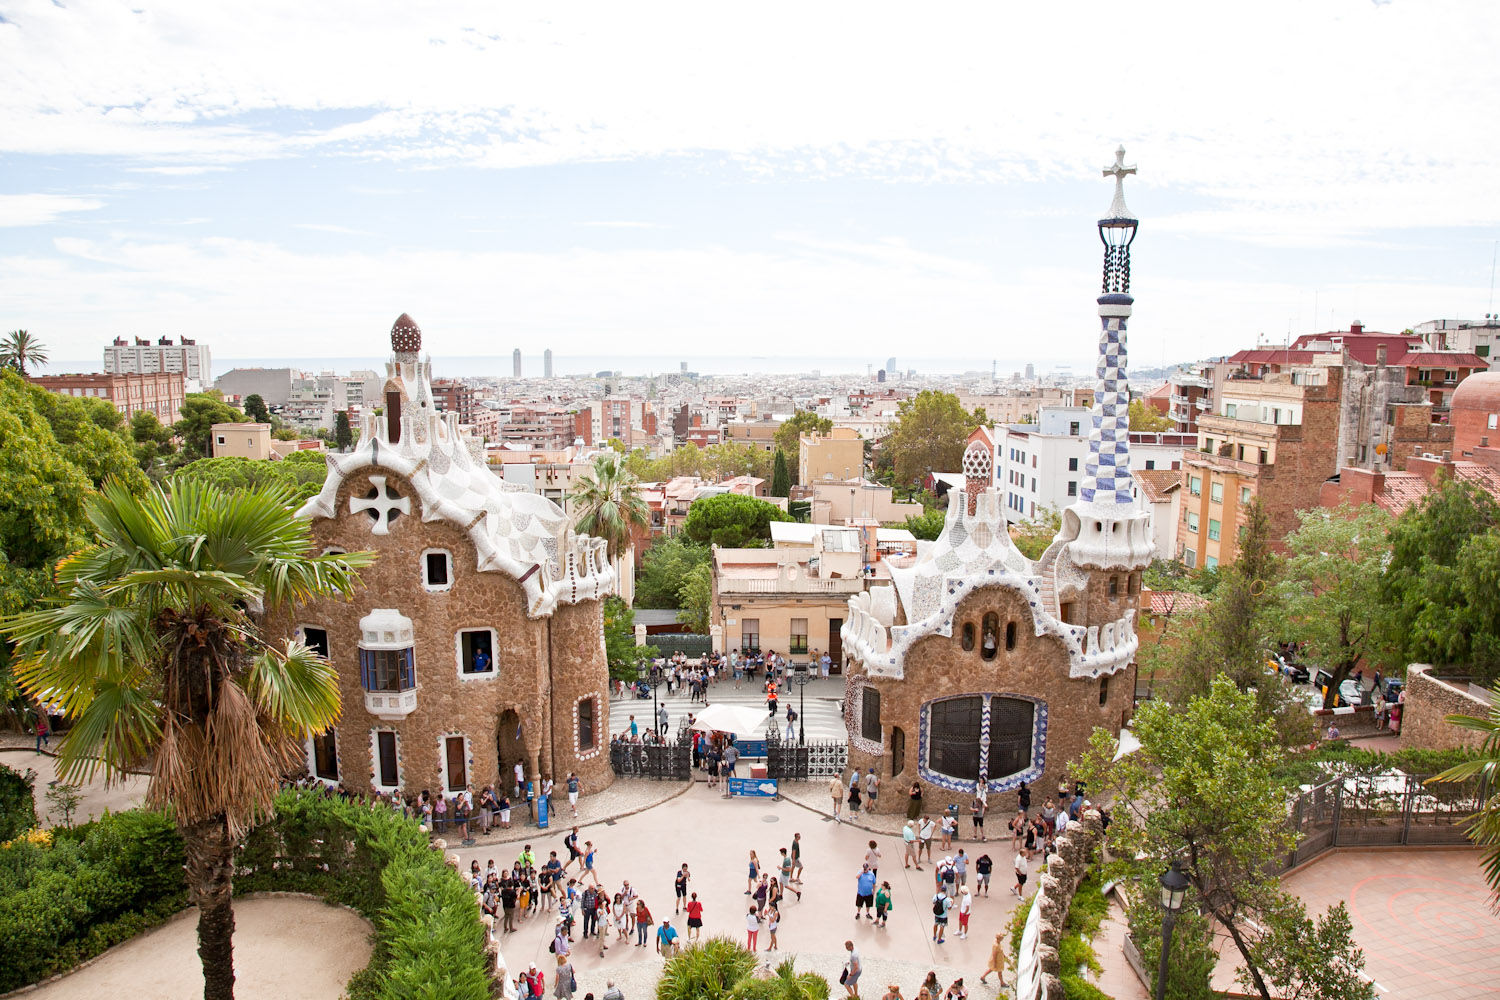 Barcelona - As the second largest city in Spain, Barcelona is an epicenter of activity and culture. This beautiful city is packed with outdoor markets, shops, museums, churches and top restaurants. There is plenty to see in each of city's six districts.